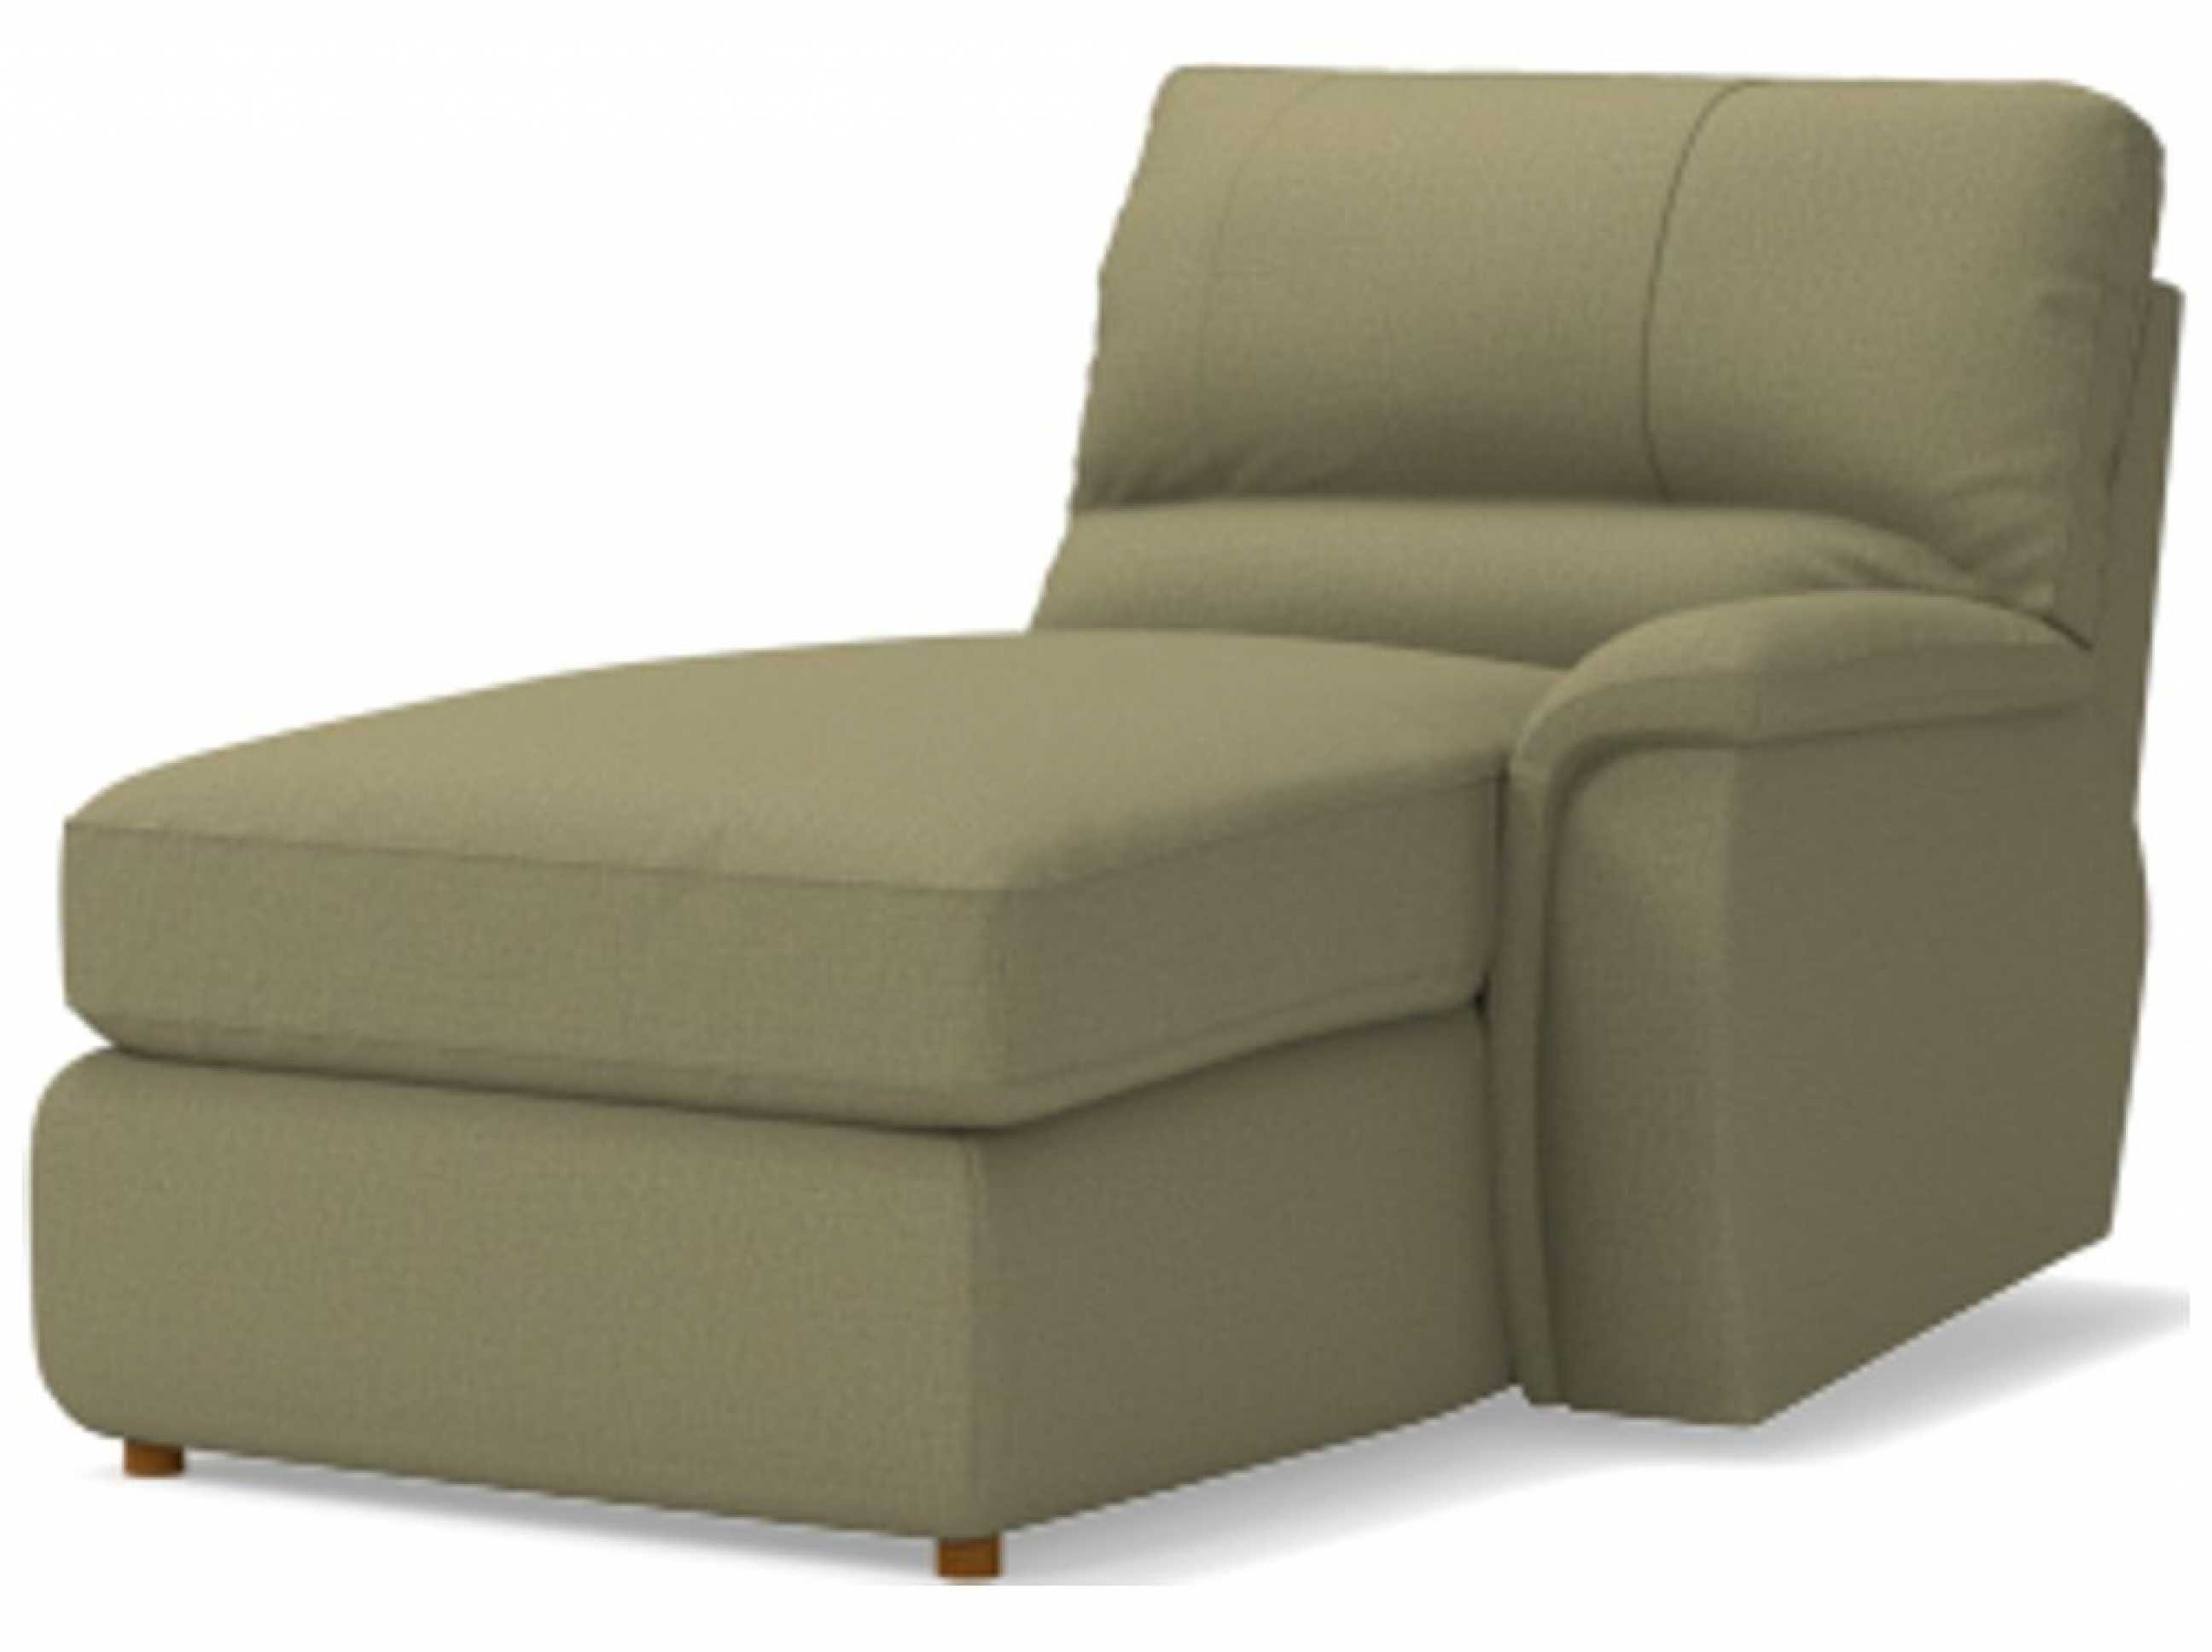 Varossa Chaise Lounge Recliner Chair Sofa Bed – Chair Design Ideas With Well Liked Varossa Chaise Lounge Recliner Chair Sofabeds (Gallery 6 of 15)